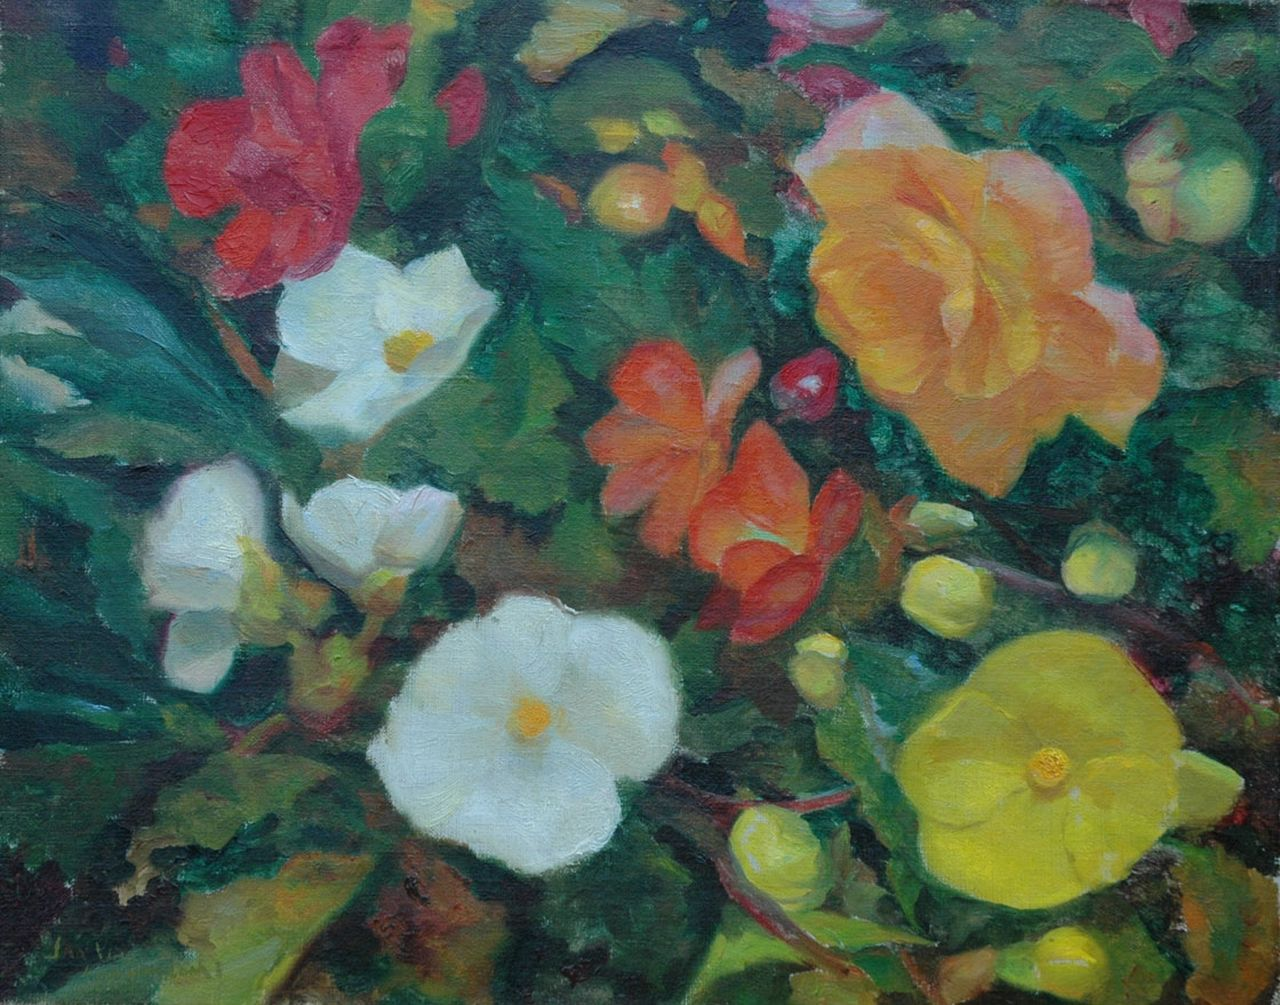 Jan Visser | Begonias, oil on canvas, 40.2 x 50.1 cm, signed l.l.